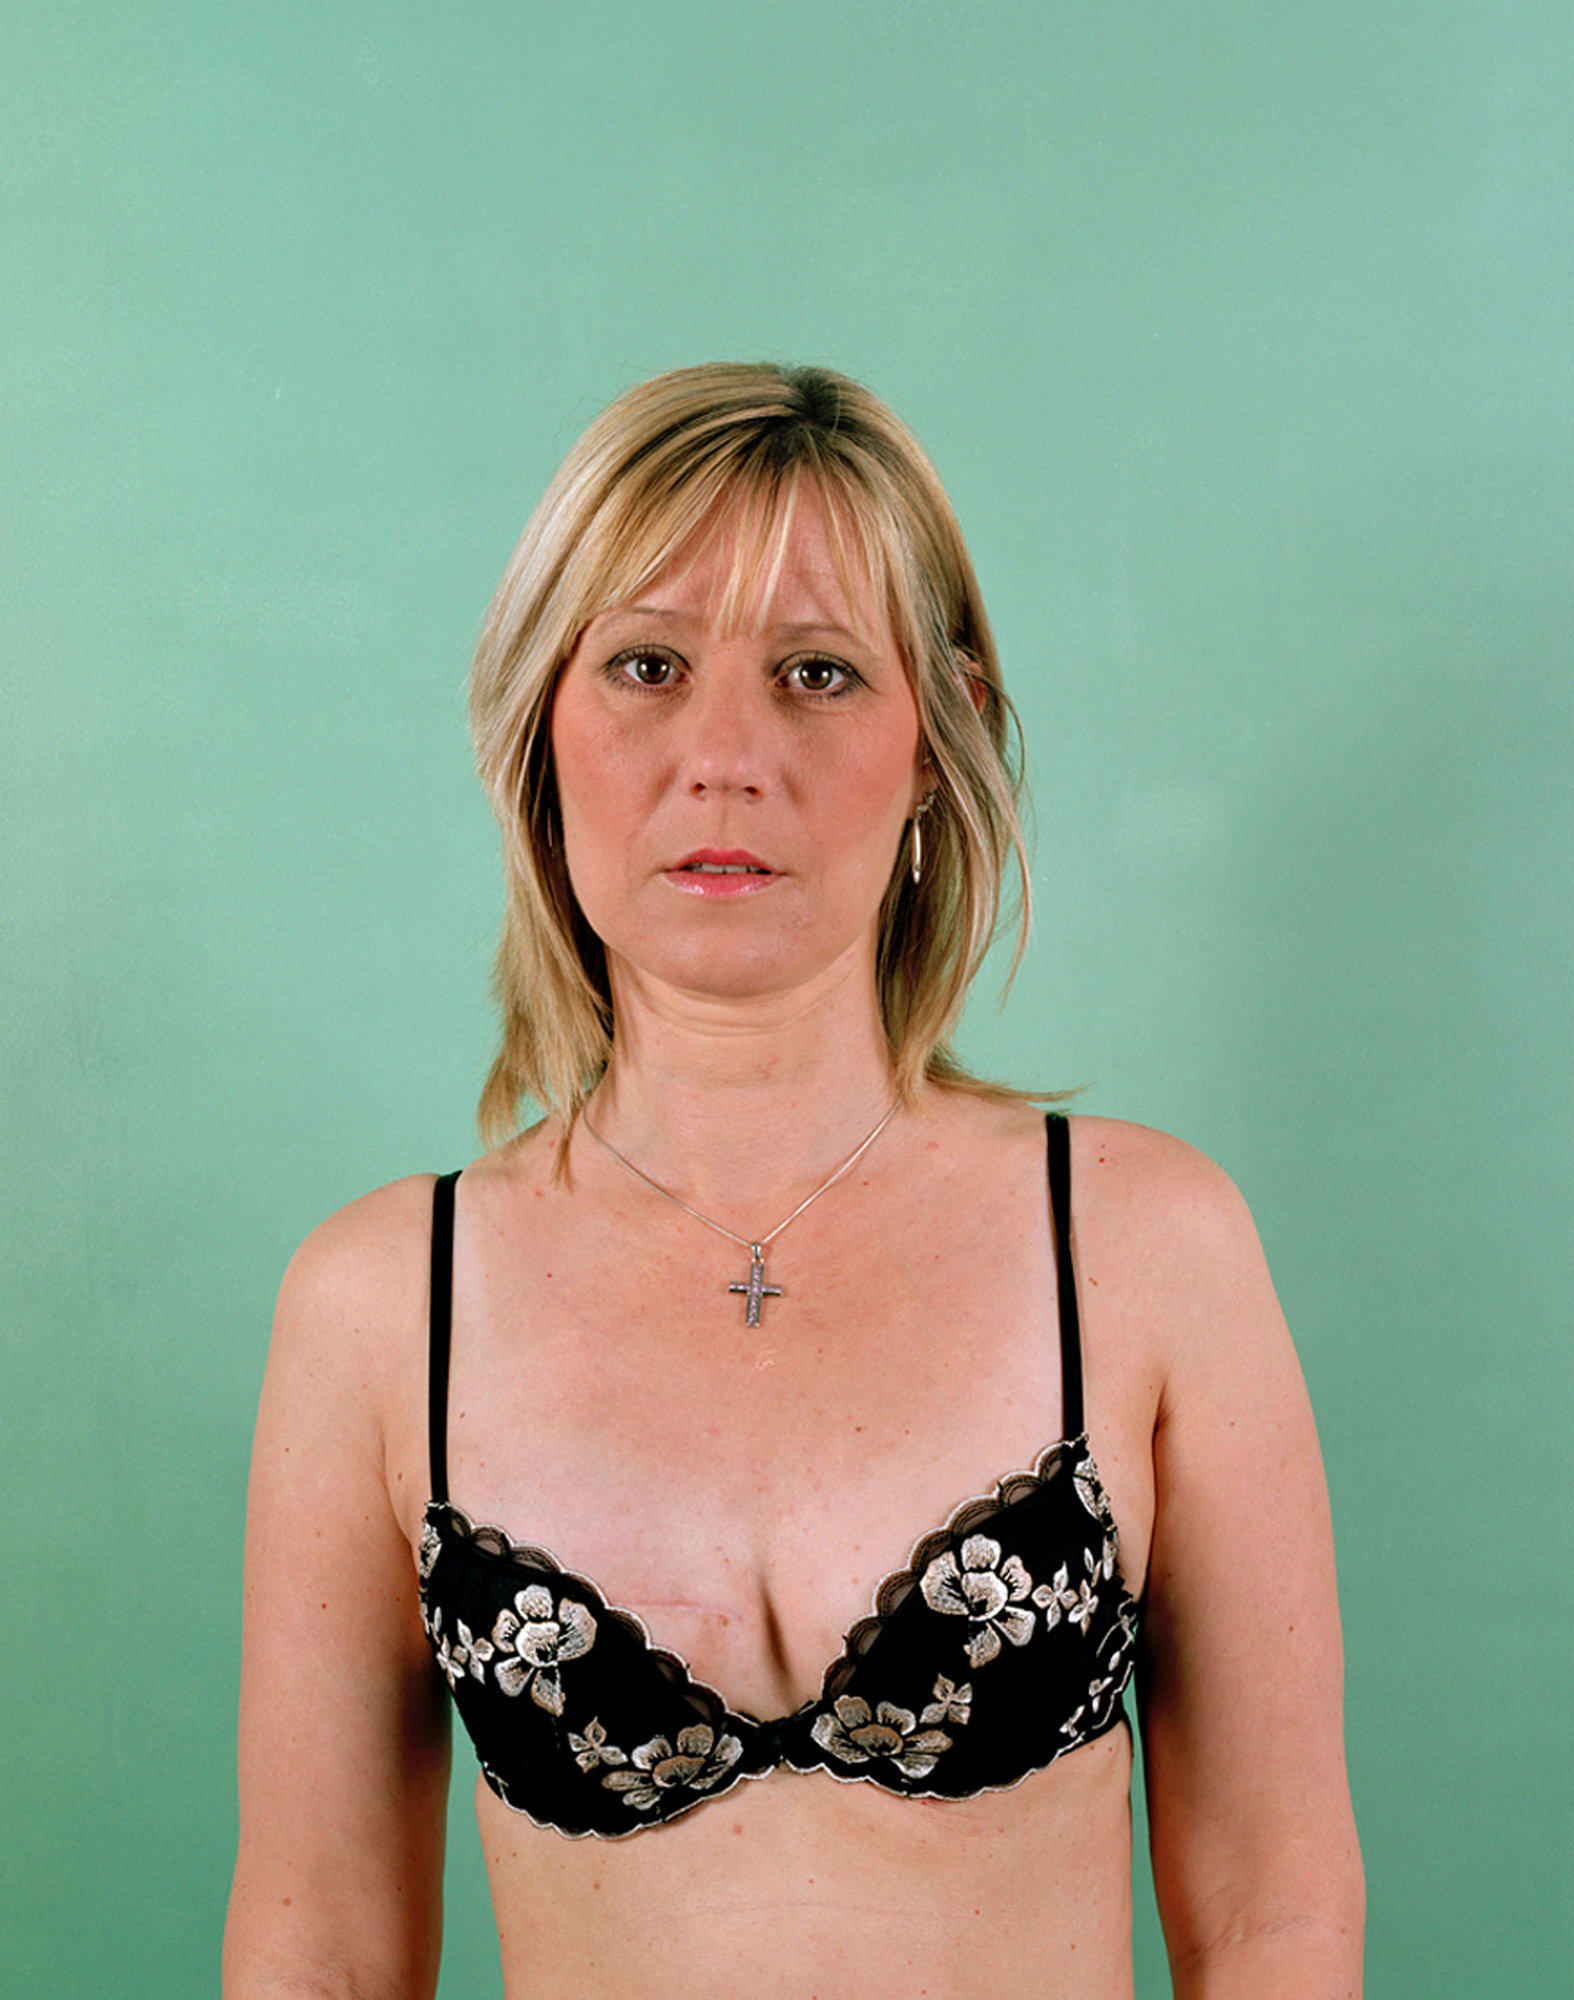 Julie Foster, aged 41.Breast Cancer Series.jpg